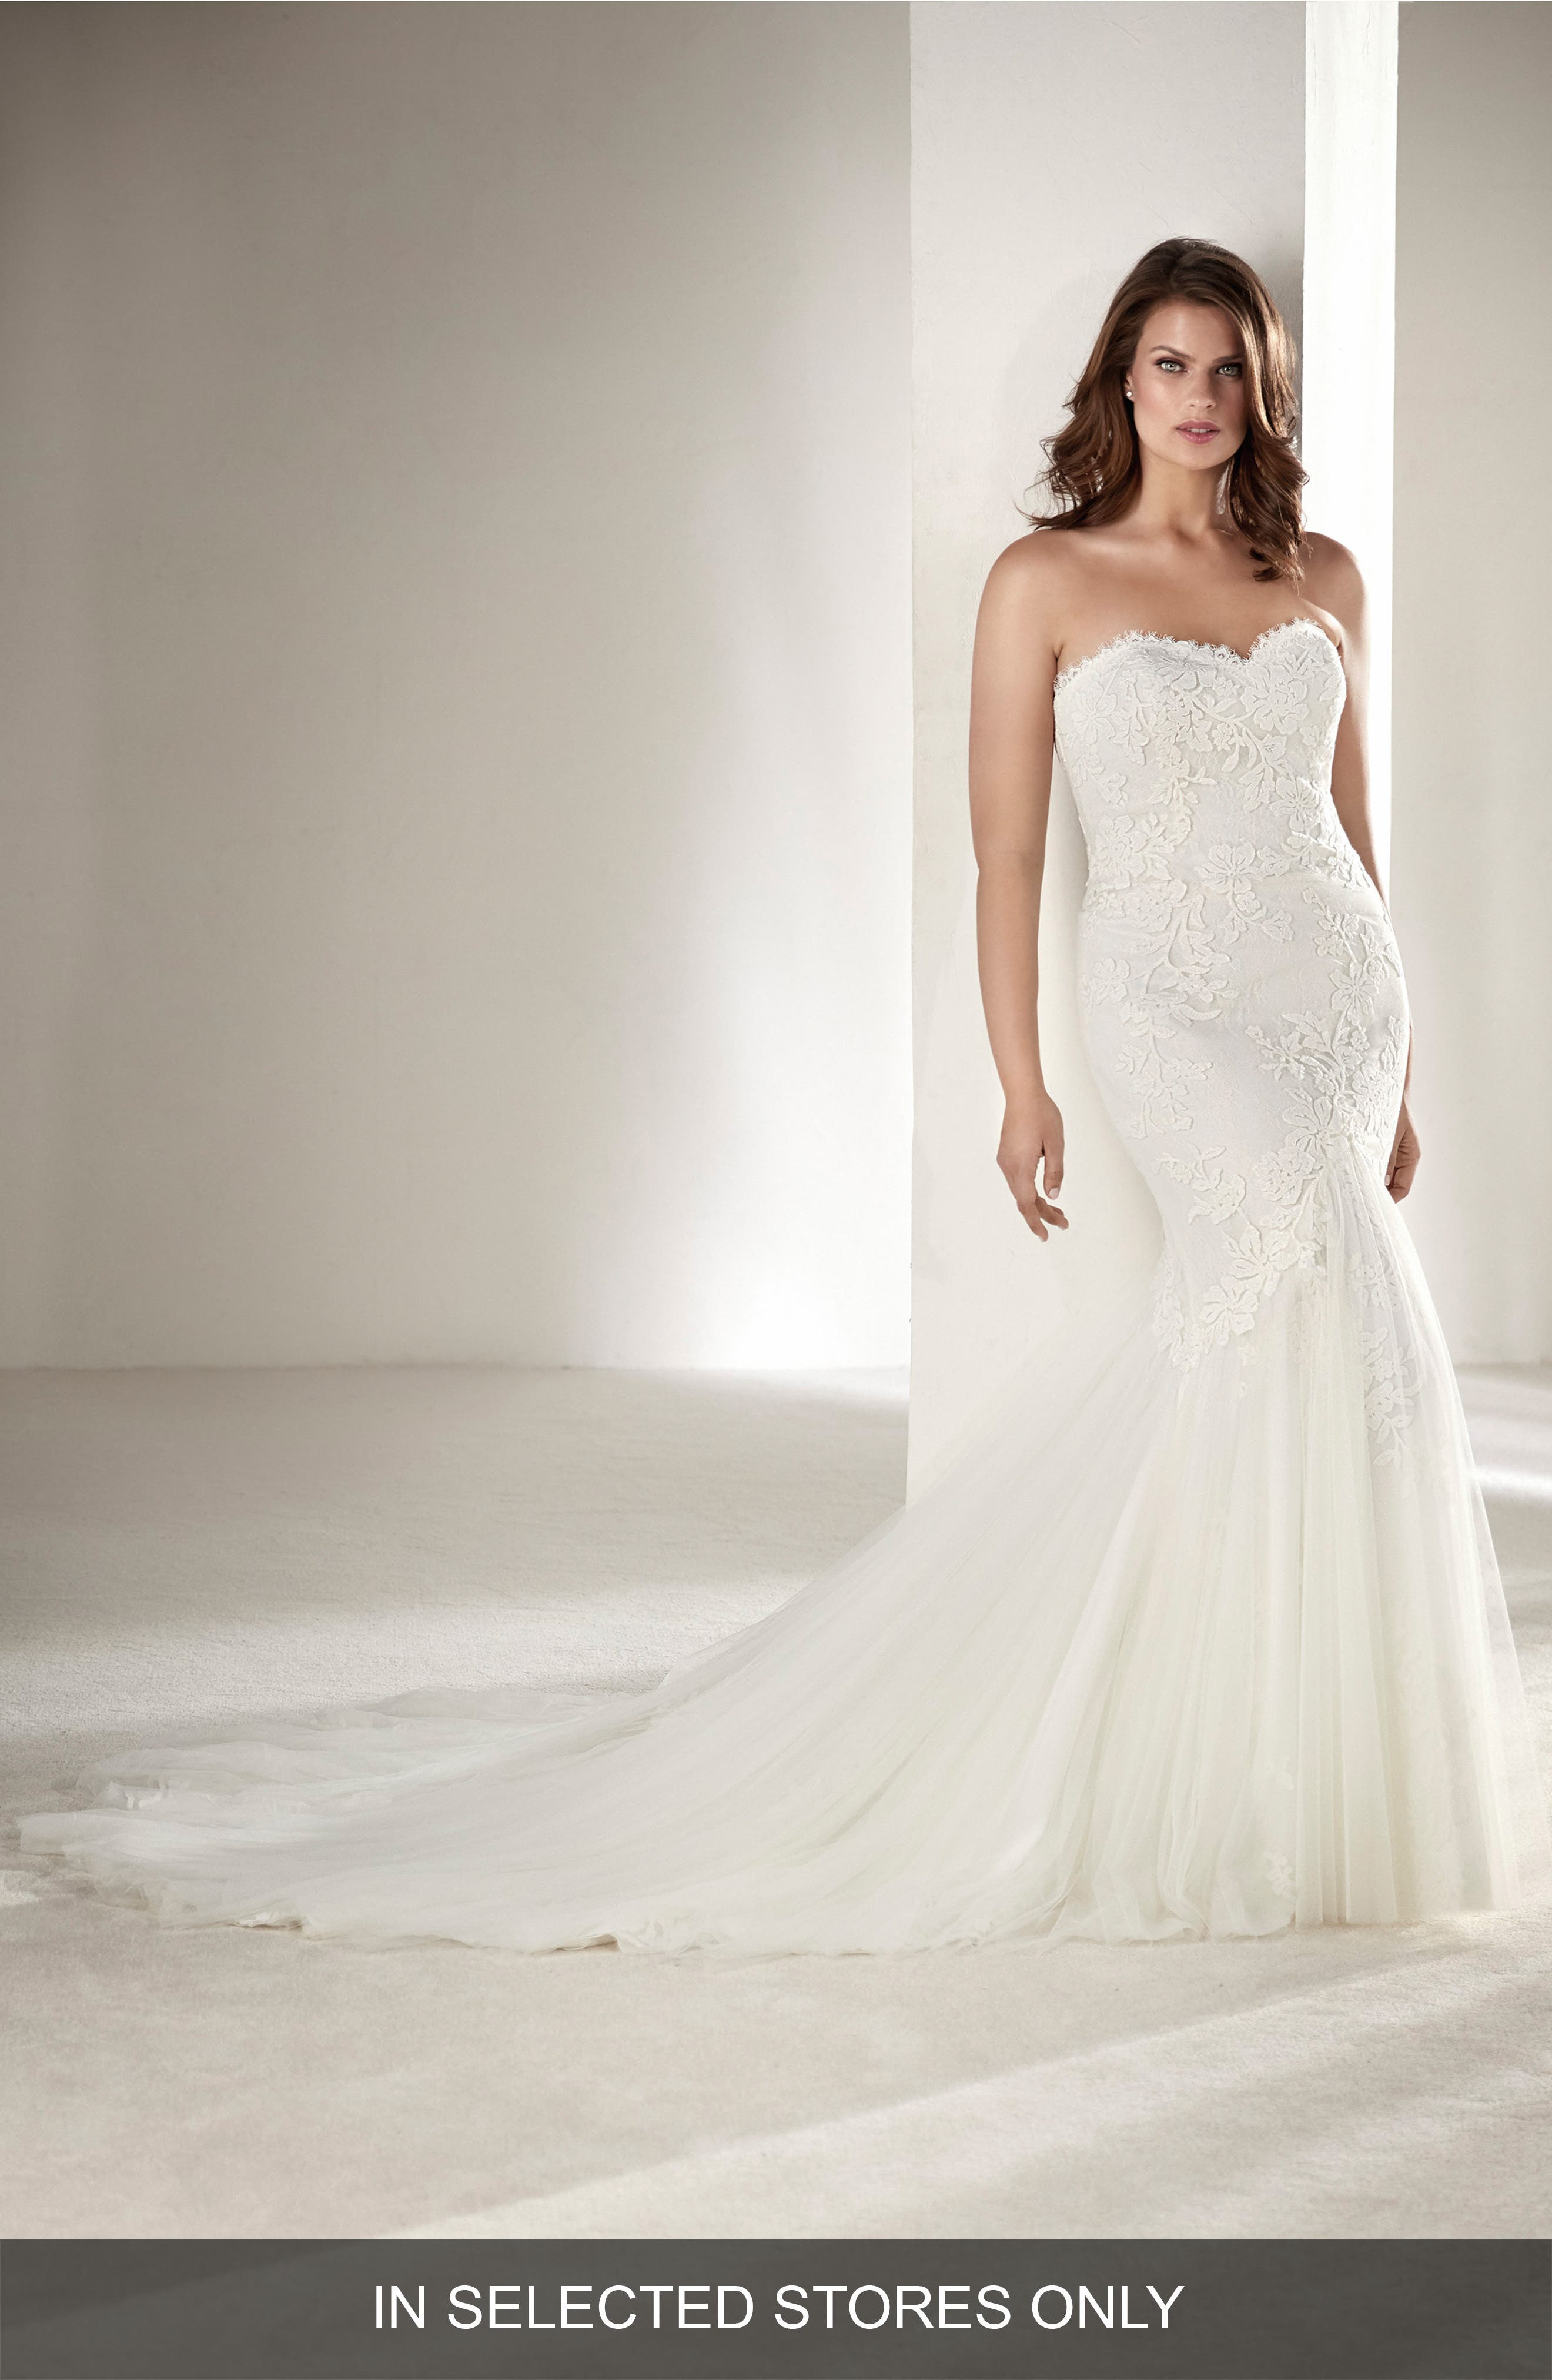 Drimea Strapless Mermaid Gown with Tulle Cape,                         Main,                         color, Off White